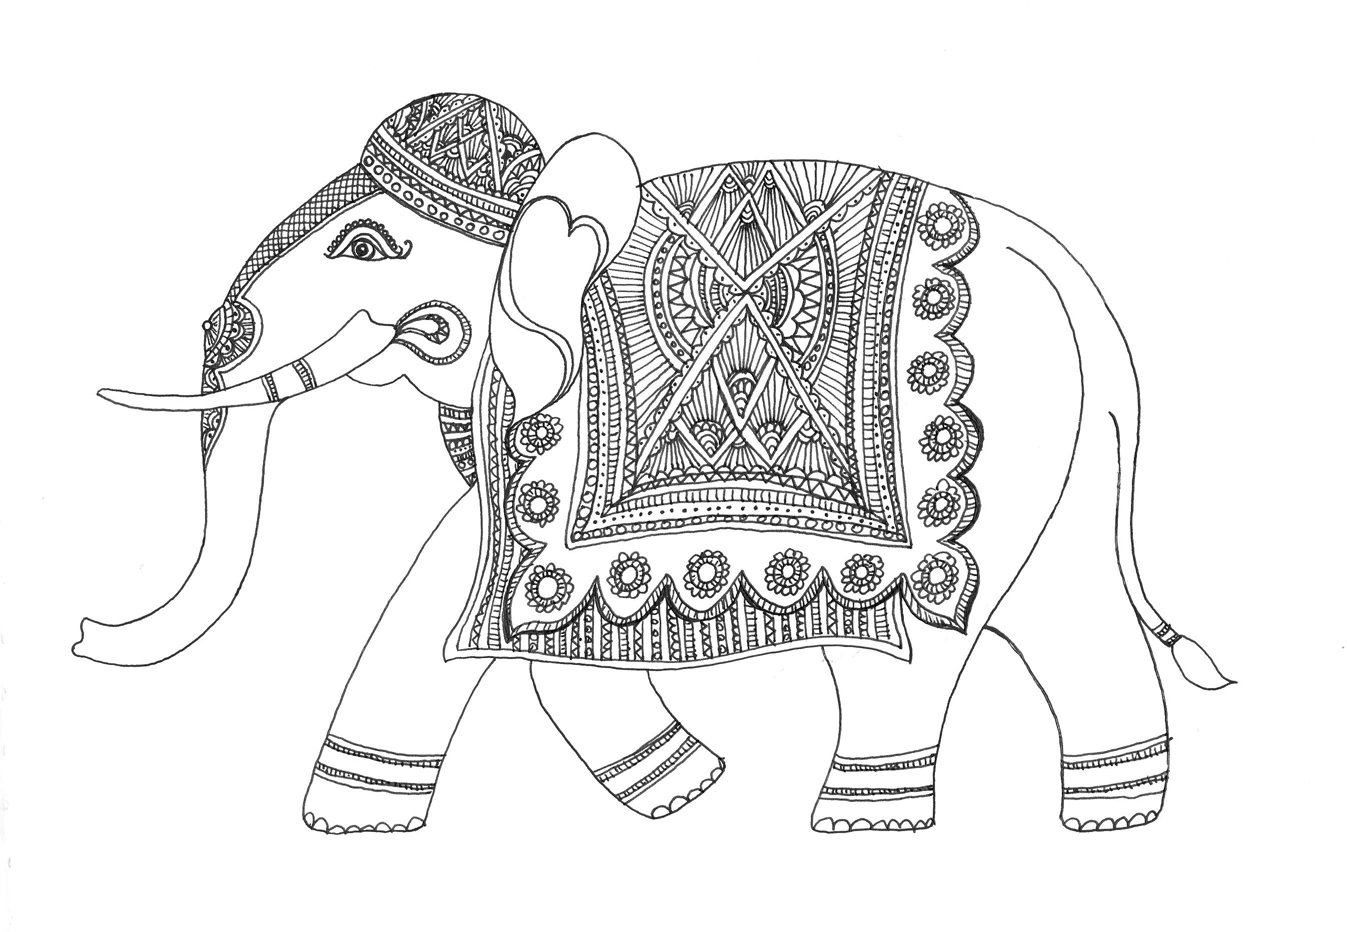 Elephant Drawing Images at GetDrawings.com | Free for personal use ...